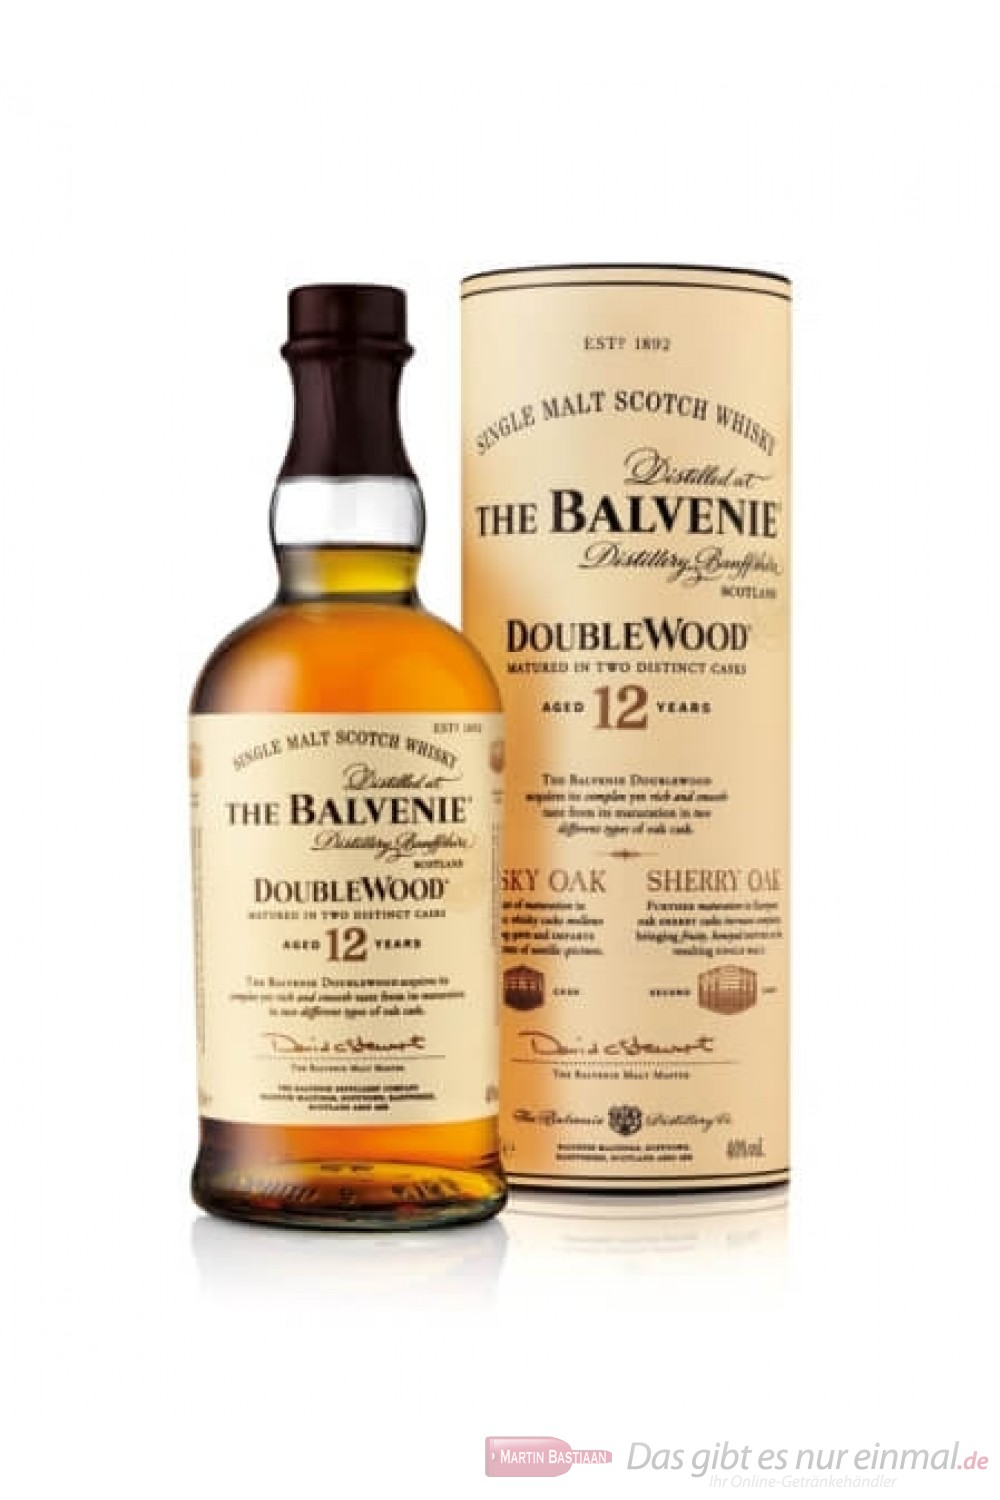 Review of The Balvenie (12 year) DoubleWood Single-Malt